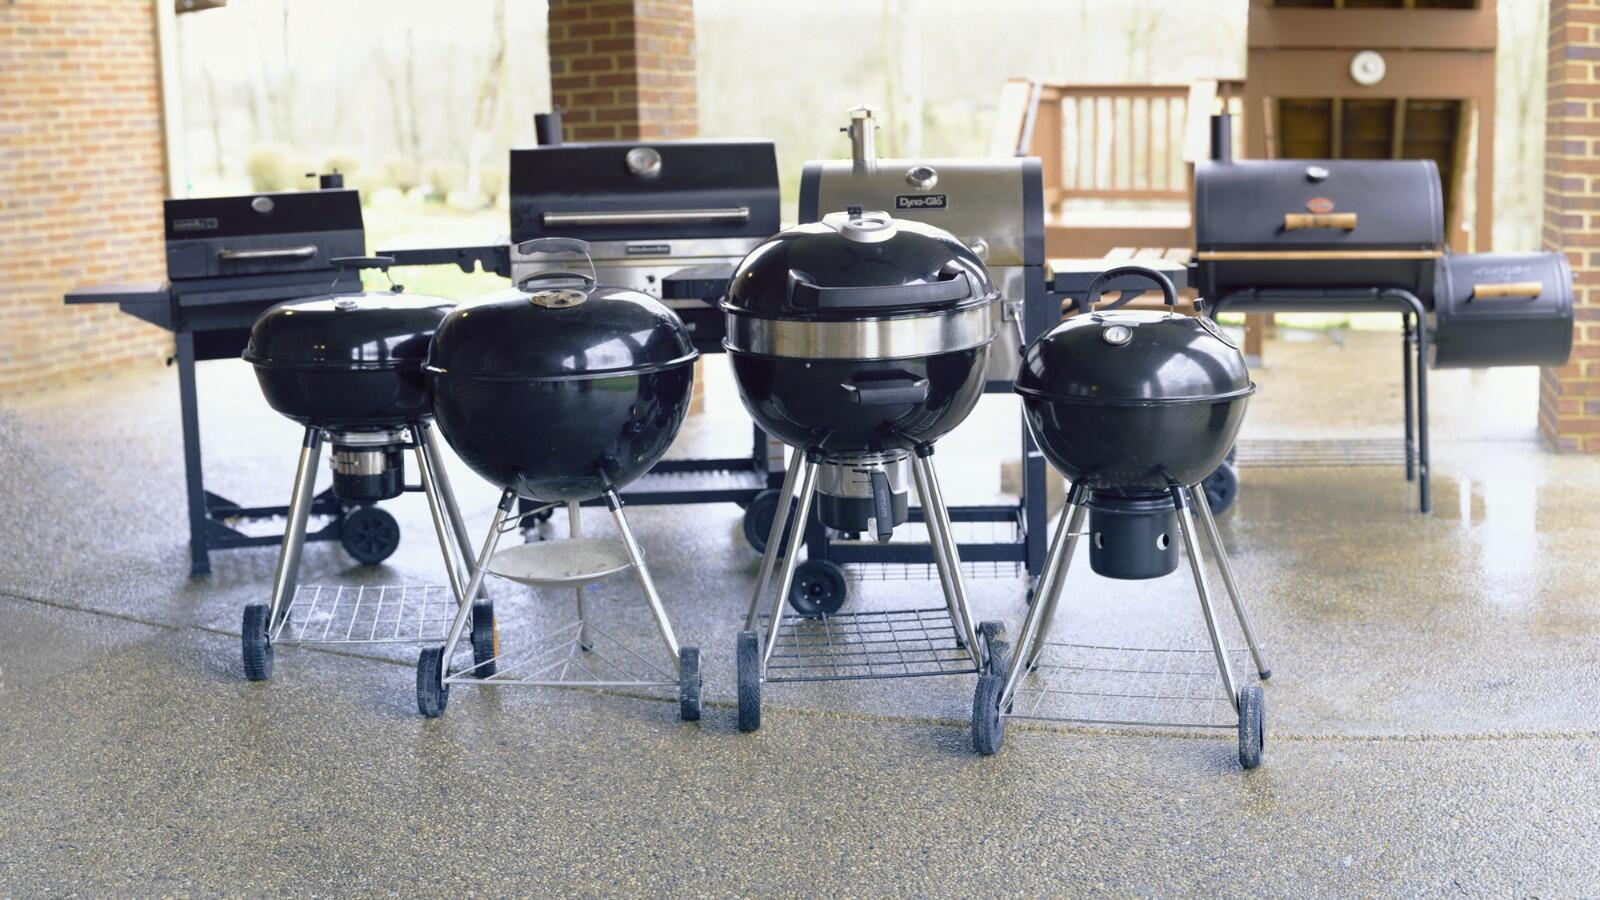 Best Charcoal Grills For 2021 Cnet